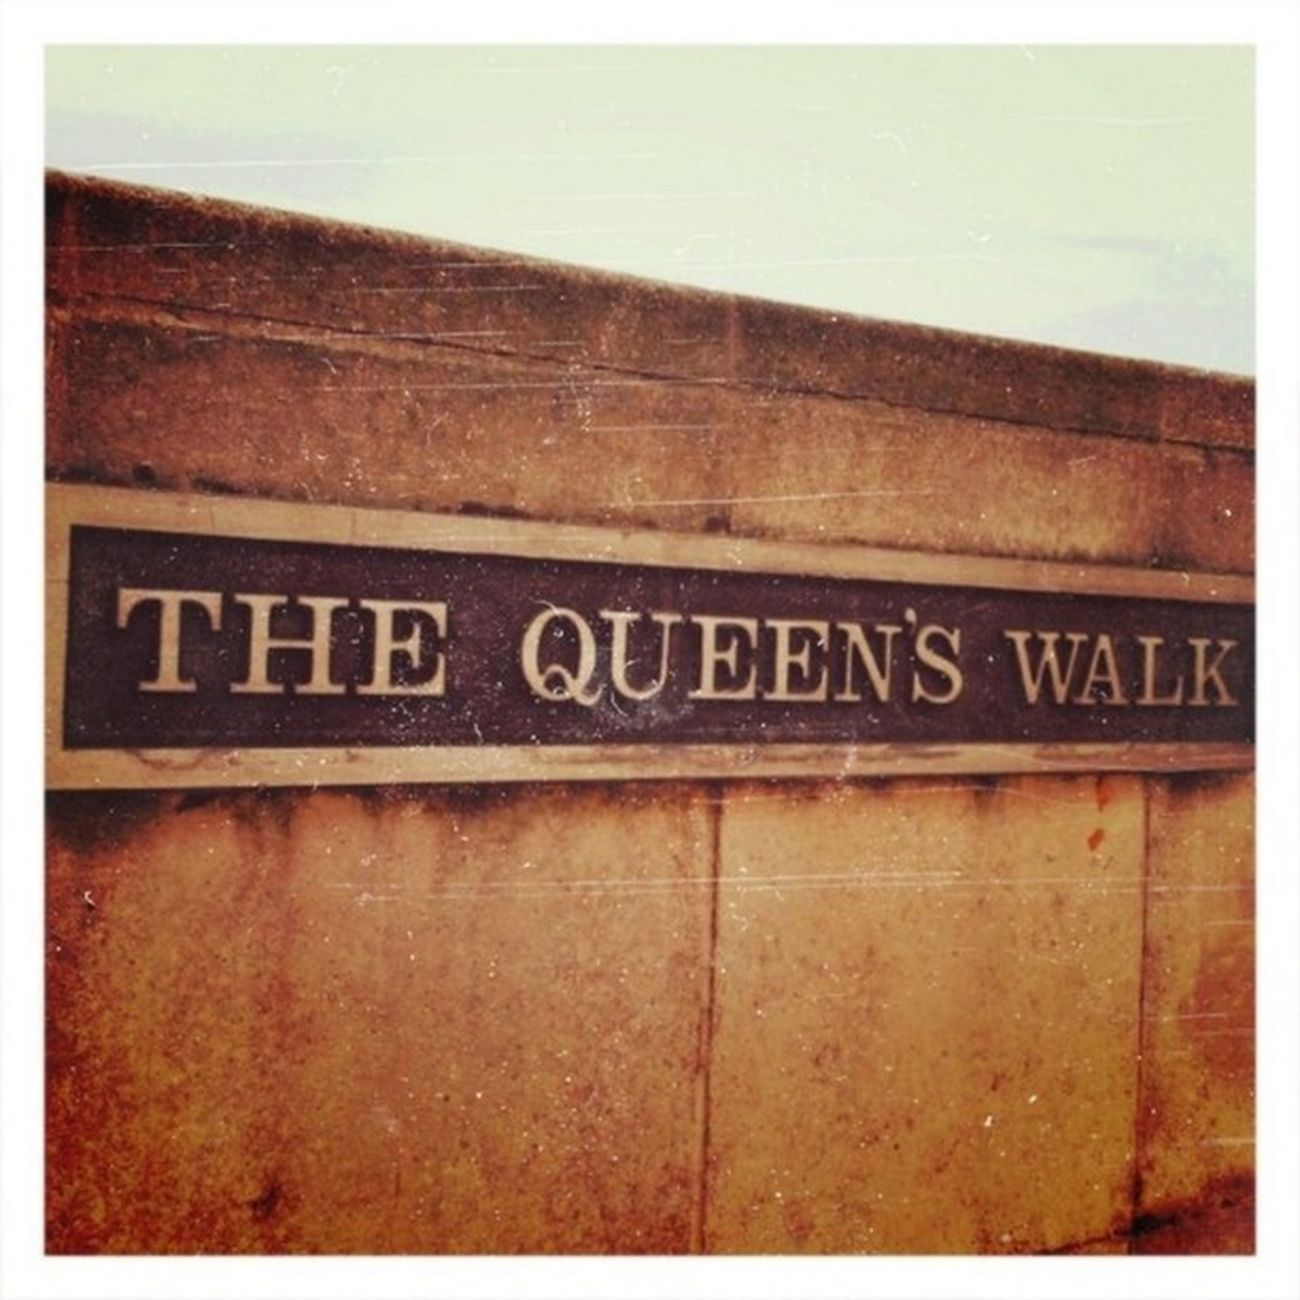 TheQueensWalk London Southbank Thethames